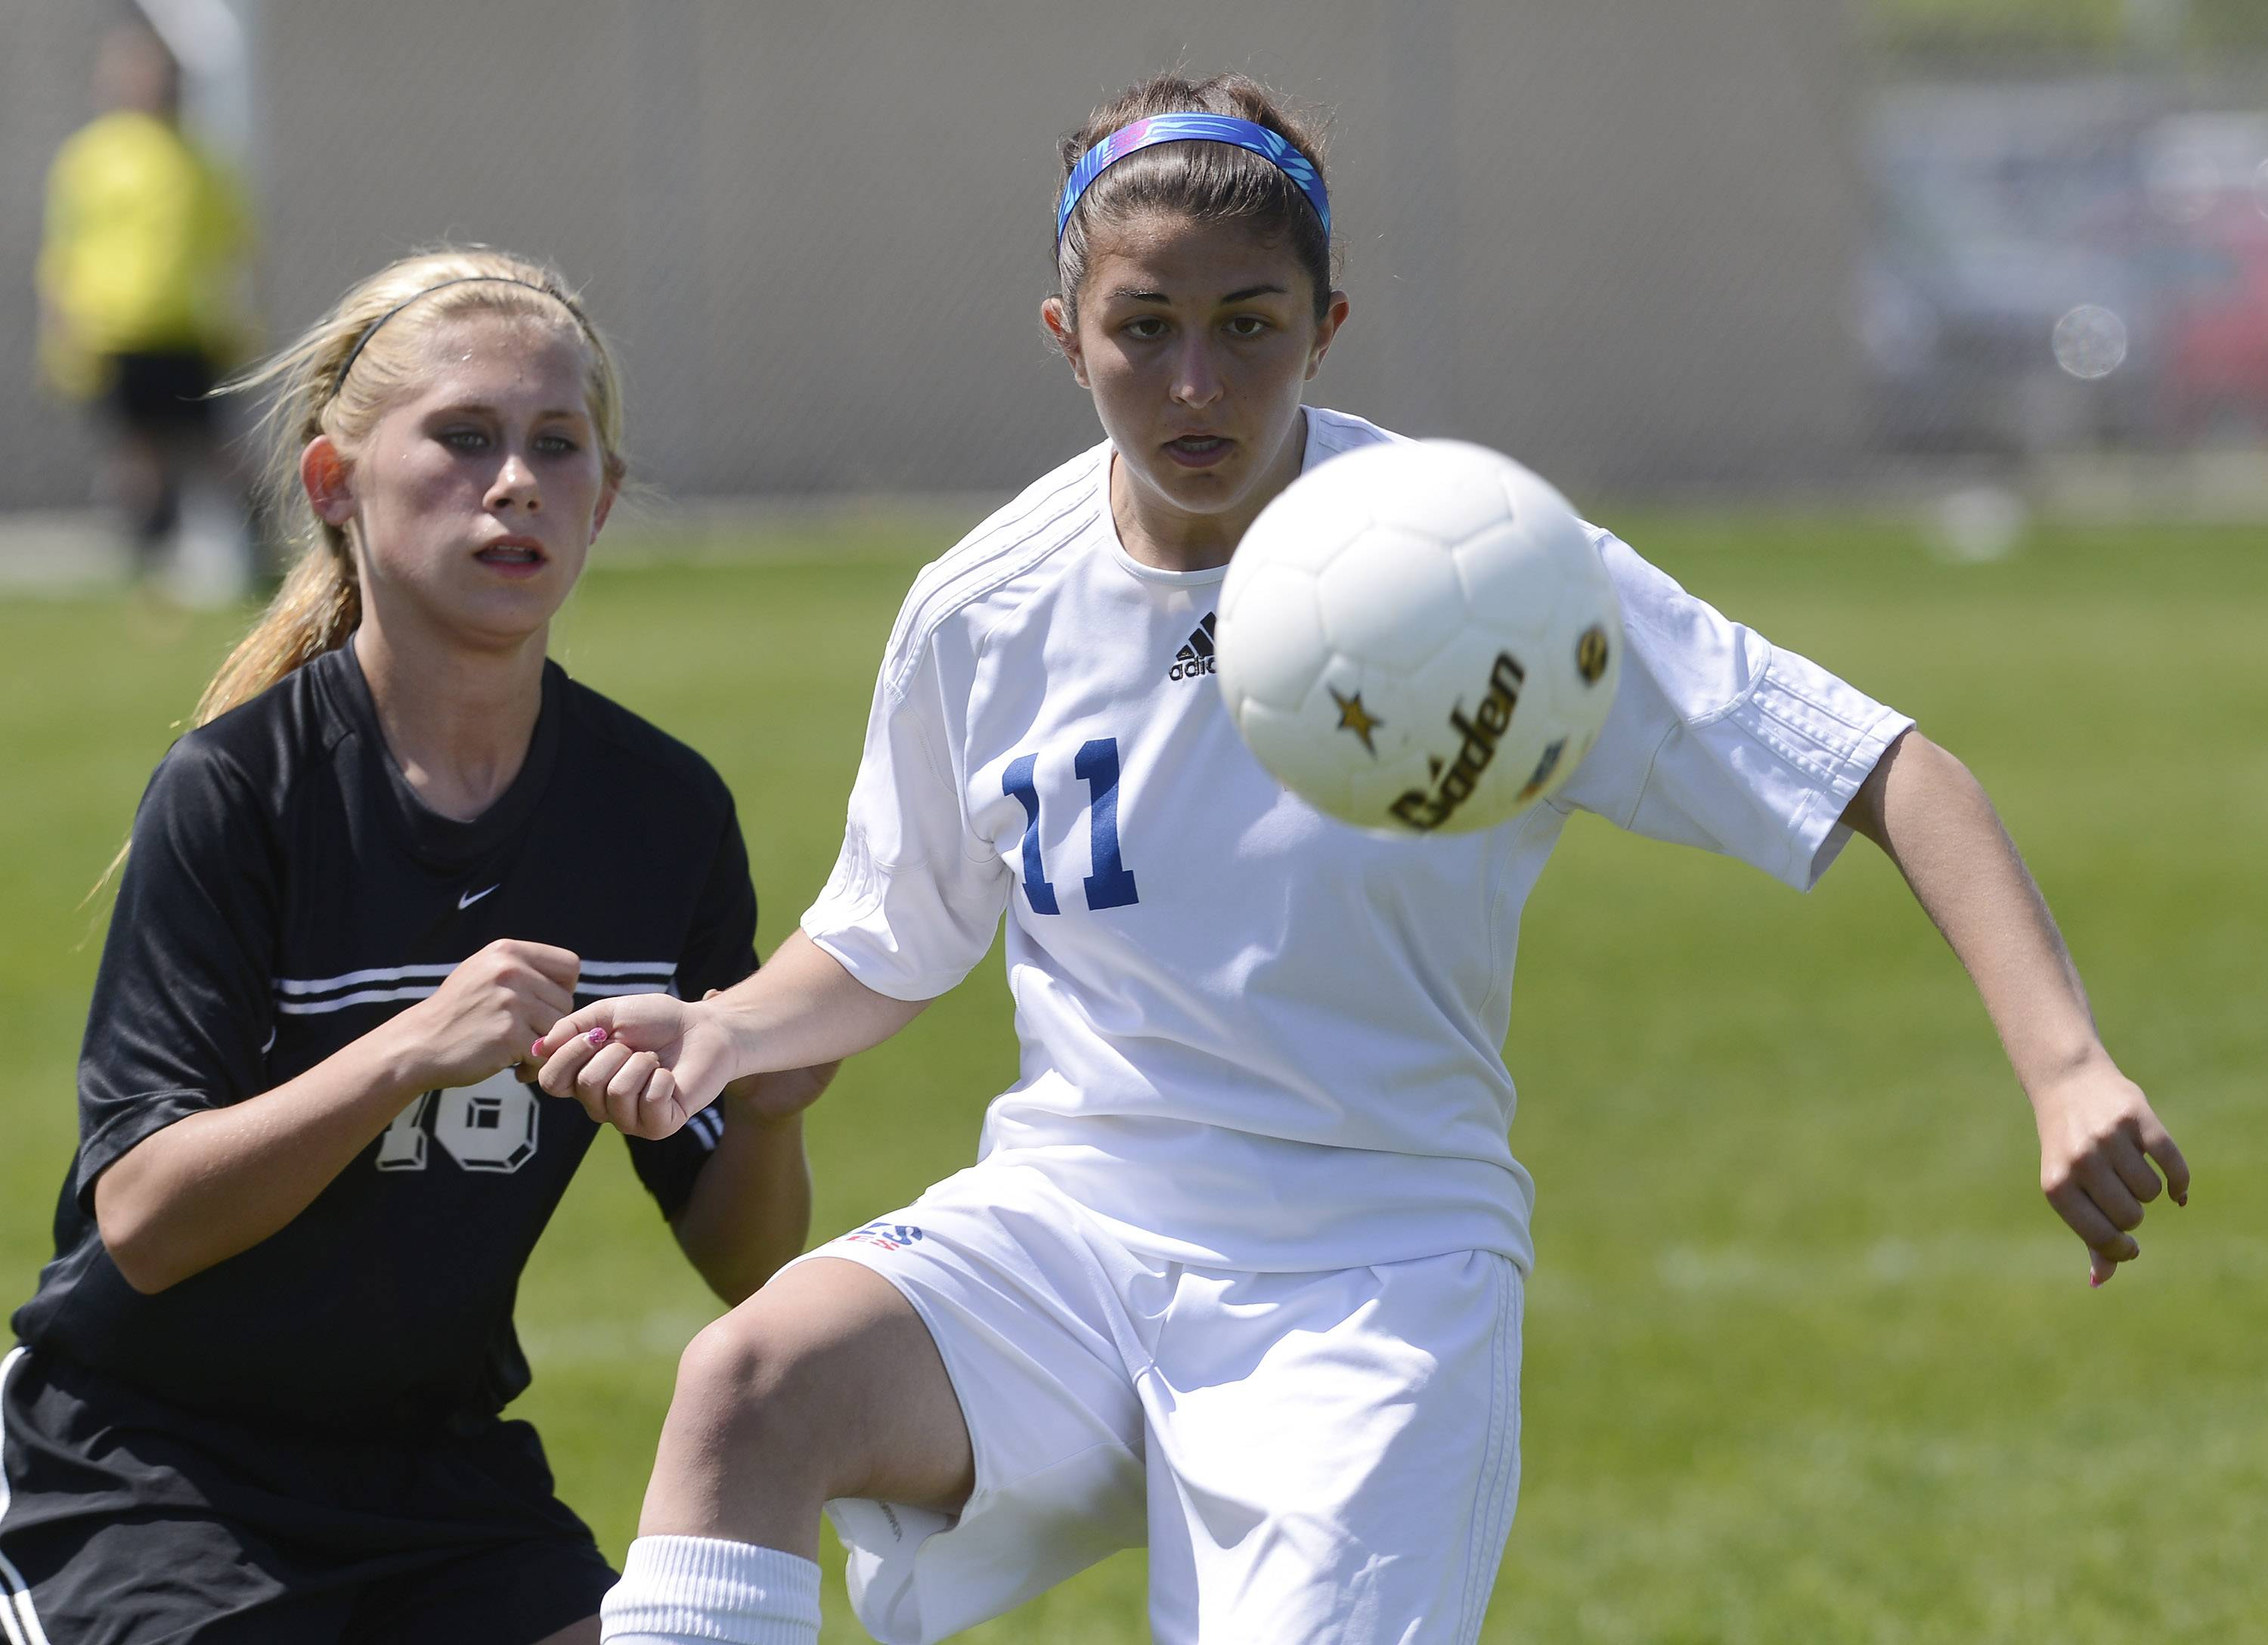 Nicole D'Ambrose of Lakes, right, tries to control the ball in front of Gabbi Fanning of Prairie Ridge during the Class 2A regional final at Lakes on Saturday.